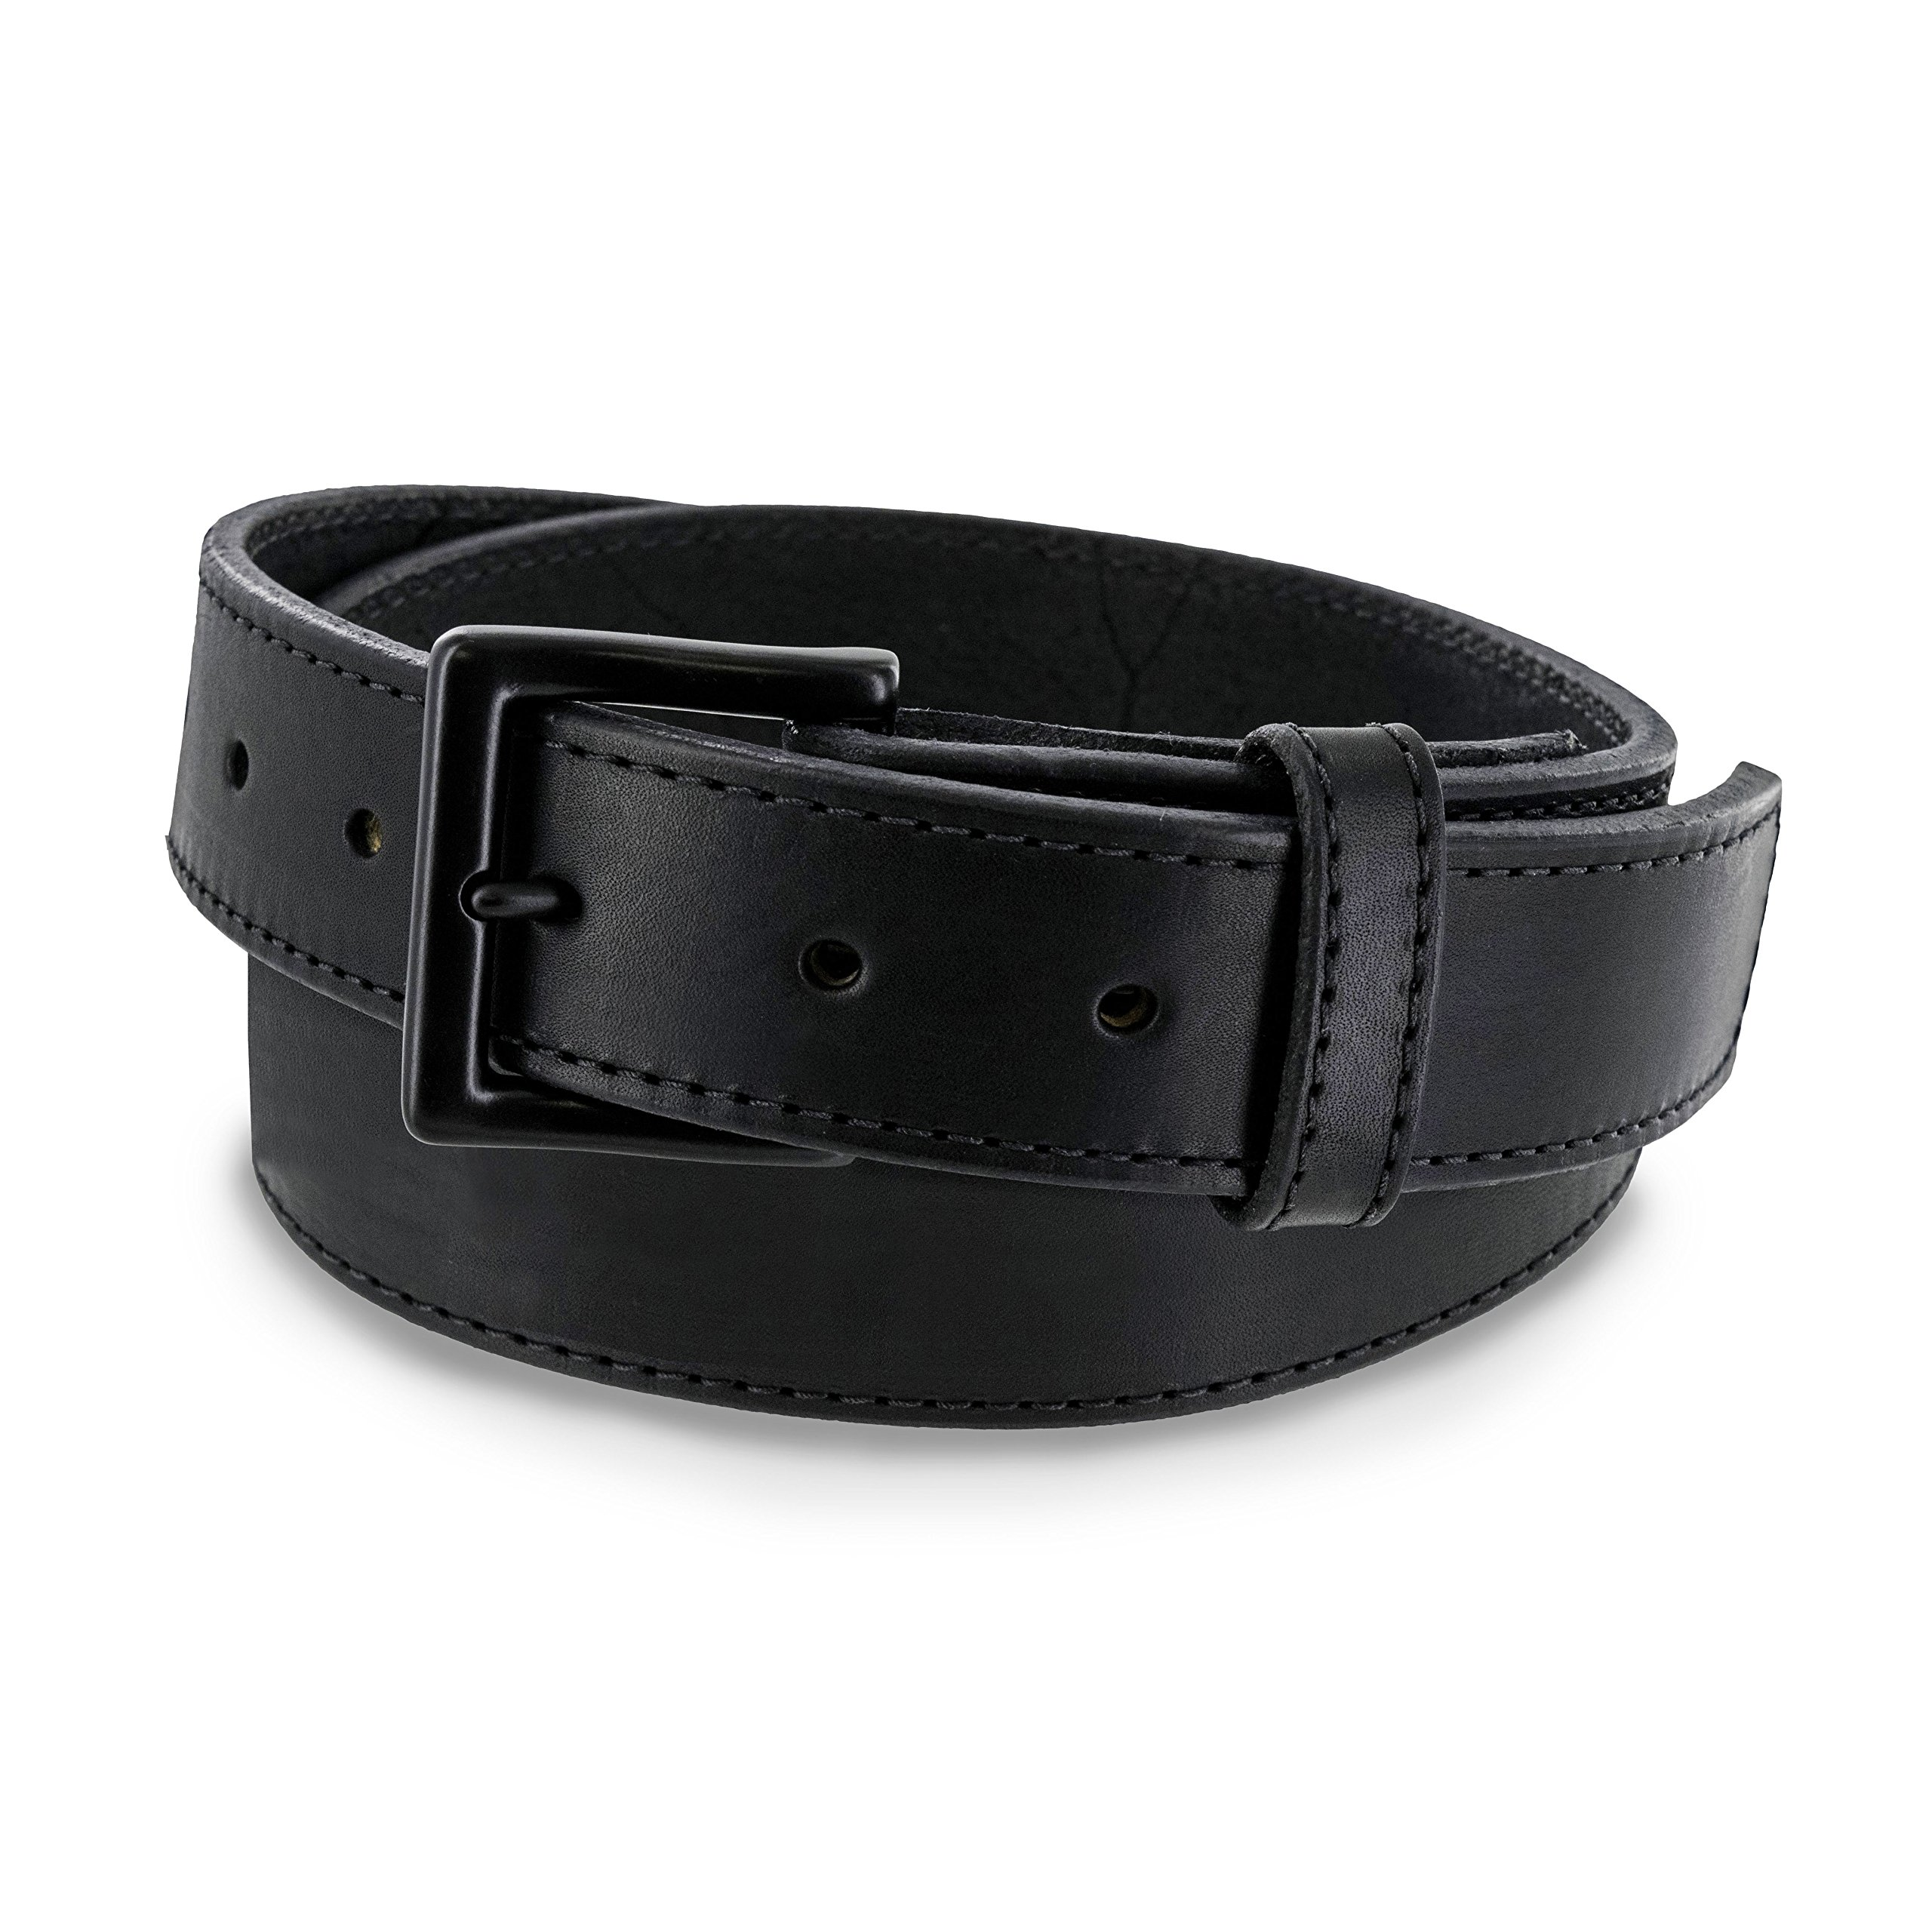 Hanks A2760 Leather Tactical Belt - 1.5'' - Black - Size 46 by Hanks Belts